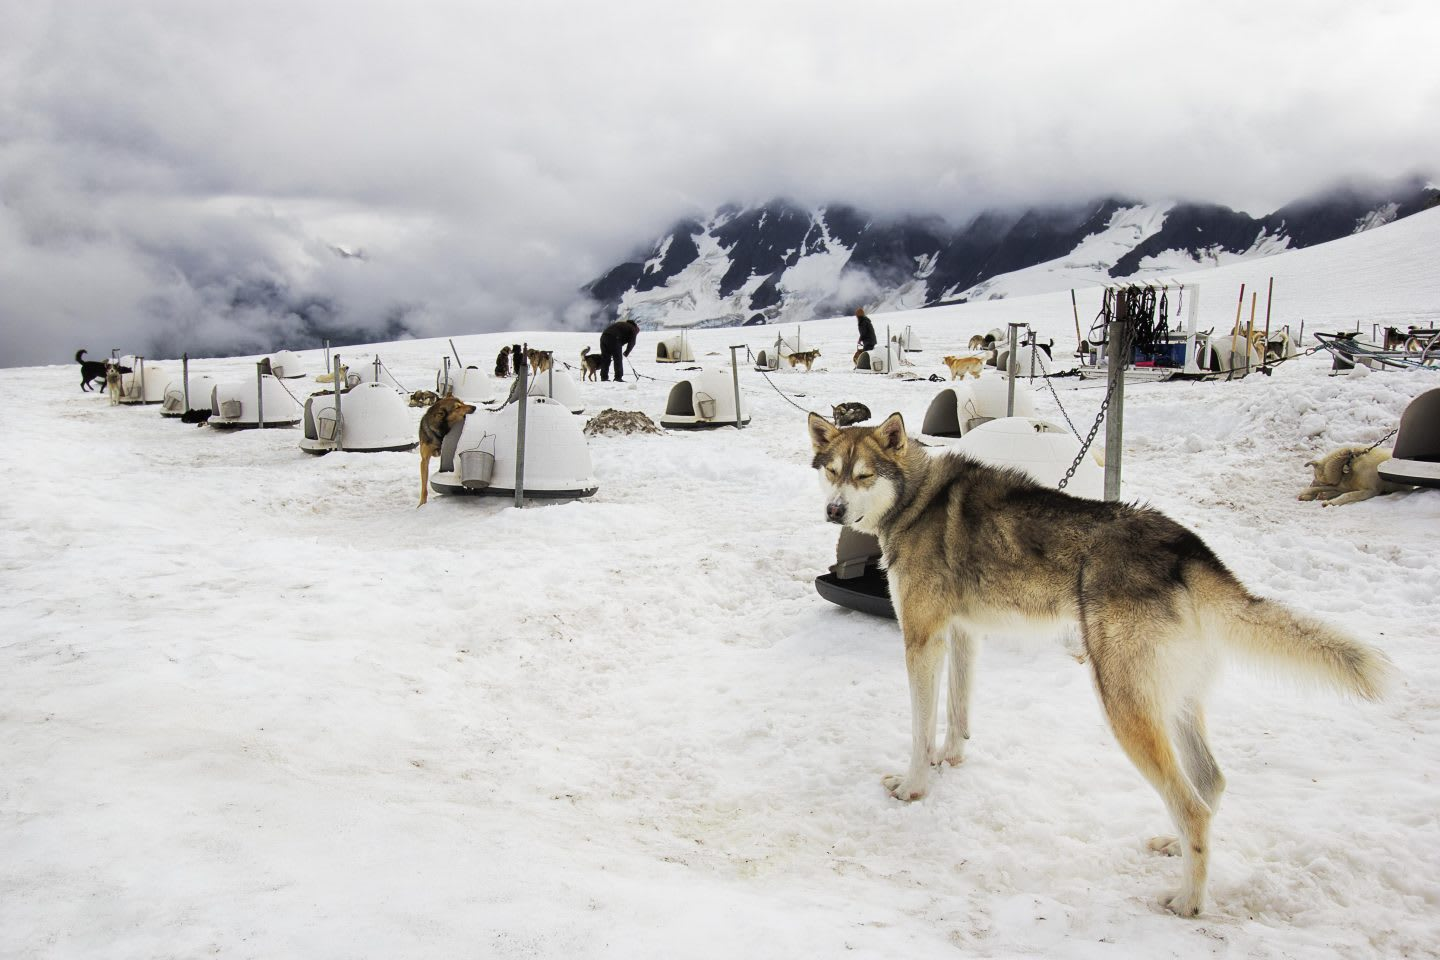 Sled dogs at dog camp in the snow between mountains in Alaska, USA, Chugach Mountains, dog sled